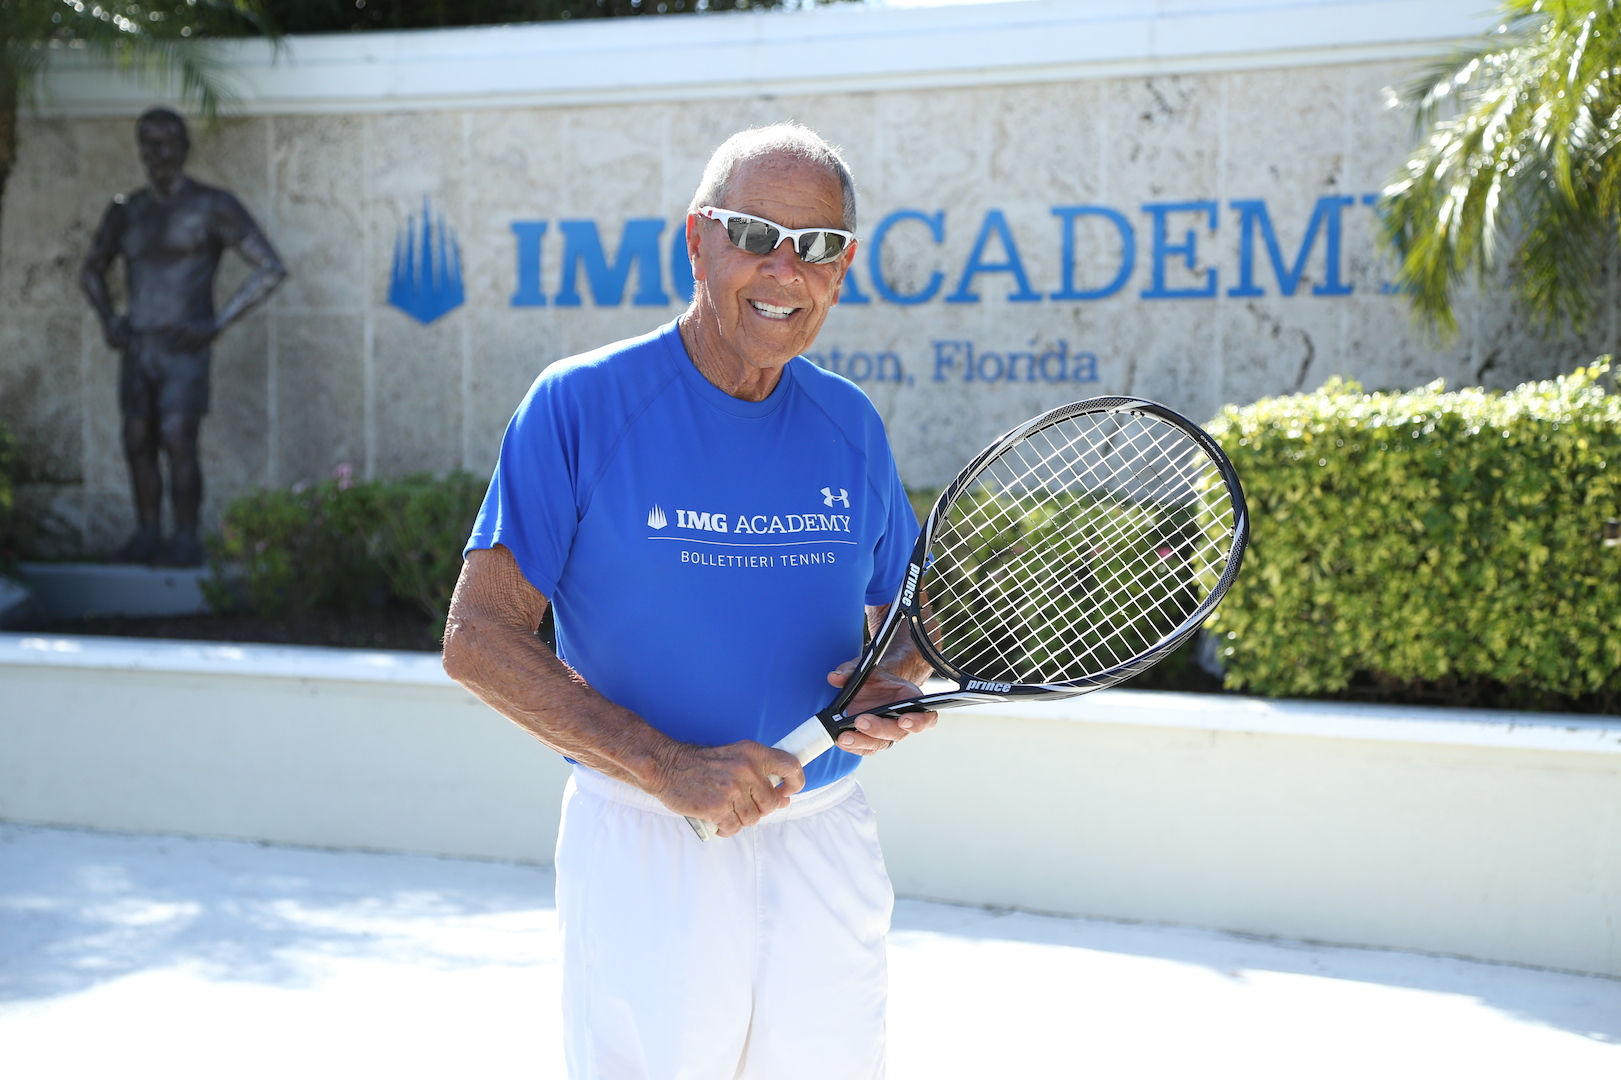 """Nick Bollettieri's new book, """"Changing the Game"""", is dedicated to Arthur Ashe and Billie Jean King. """"Most people build buildings. They tore down barriers."""""""